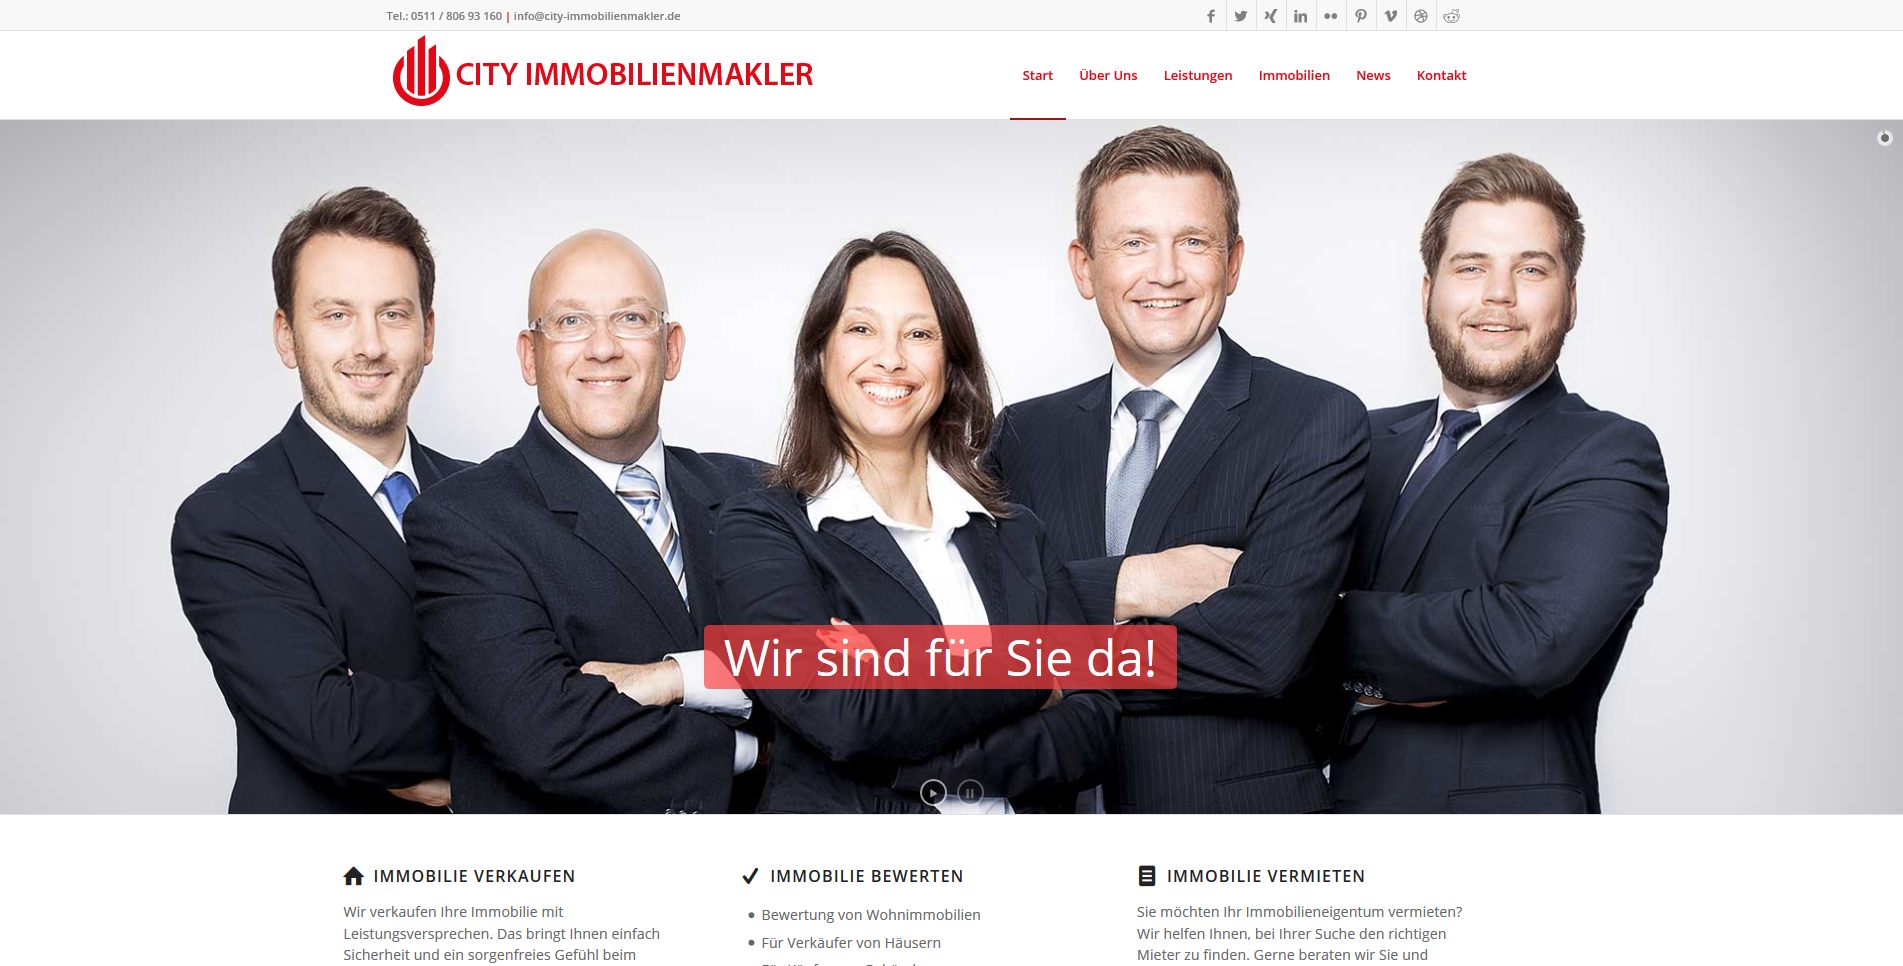 City Immobilienmakler